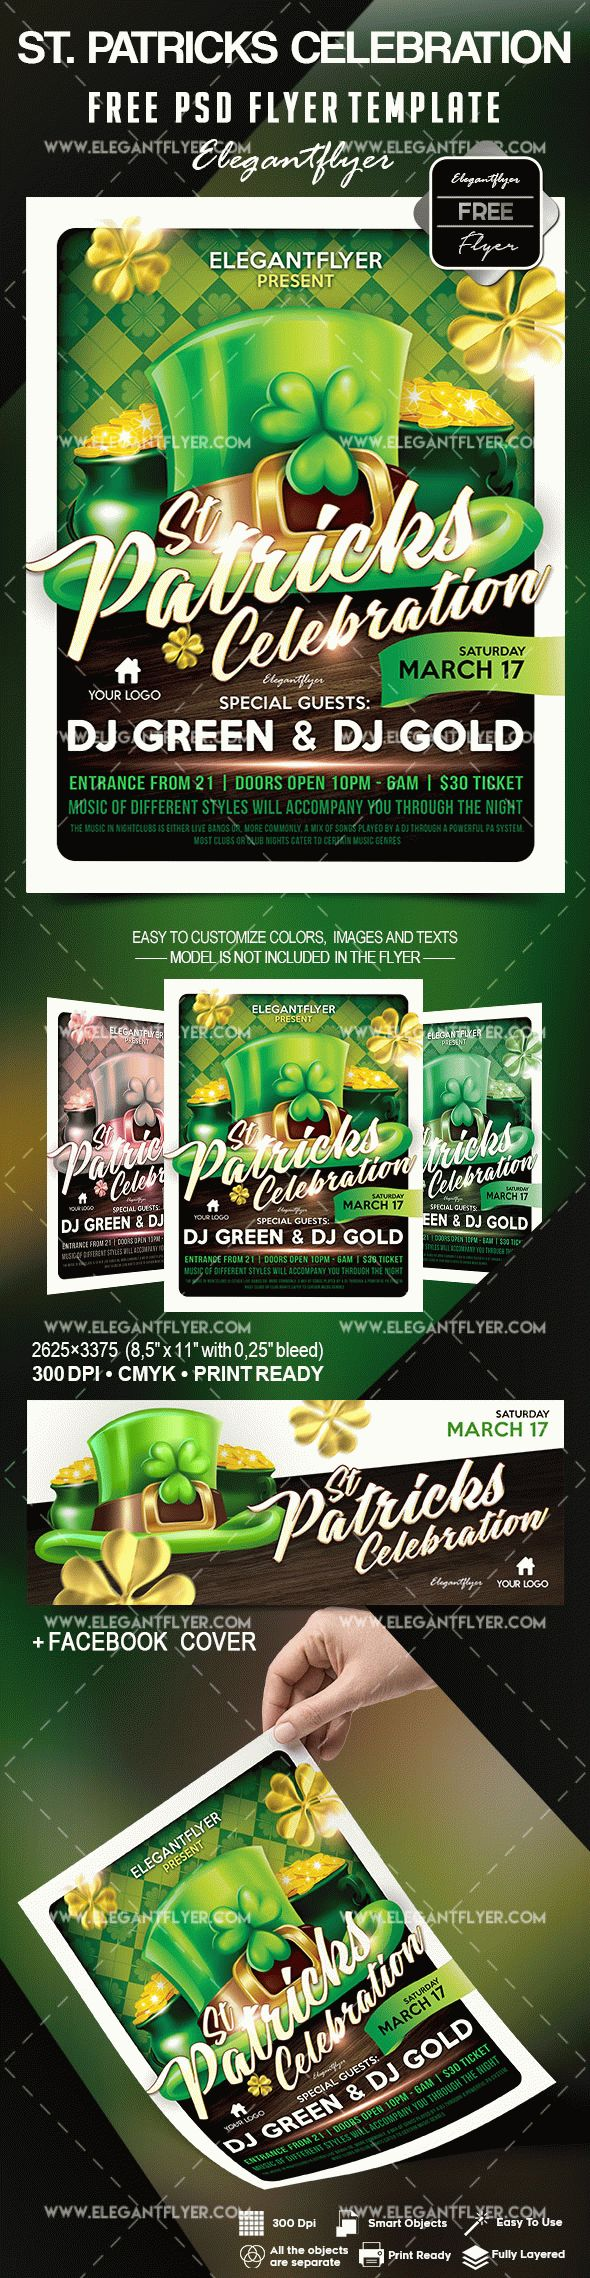 free st  patricks celebration flyer template  u2013 by elegantflyer